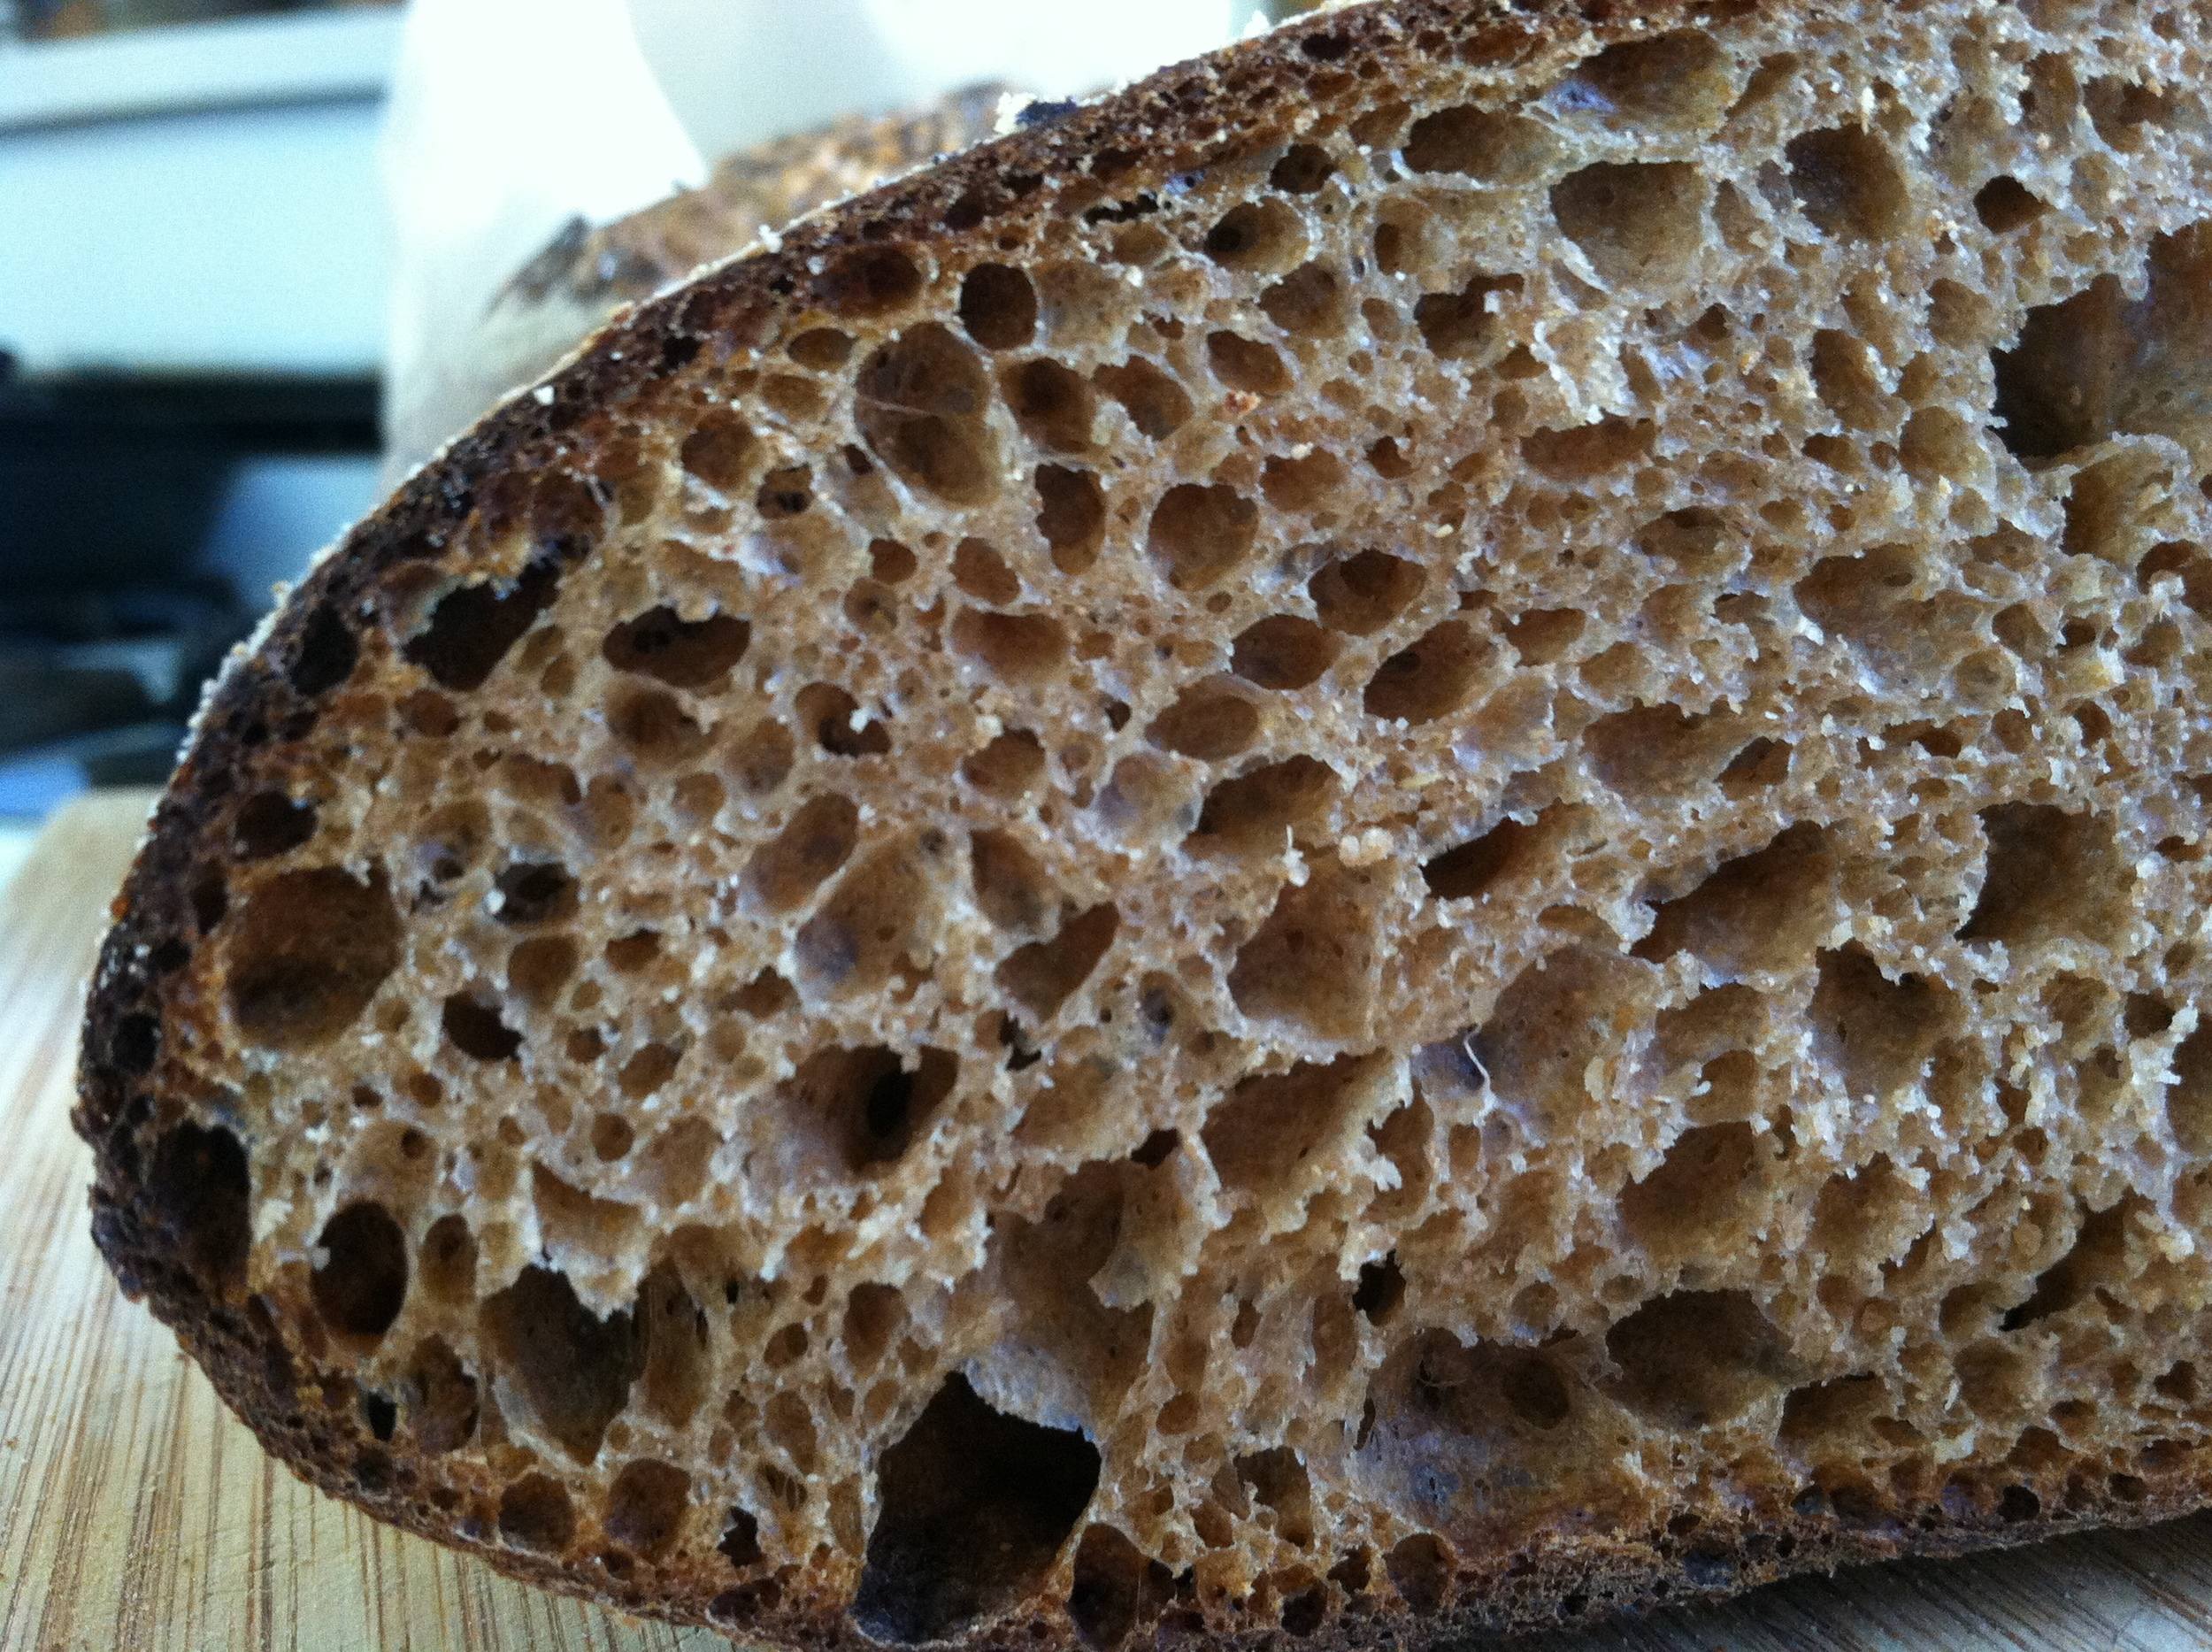 Opem crumb of   Flat Rock Villages's    Whole Wheat loaf using 100% Carolina Ground's Type 85 flour.